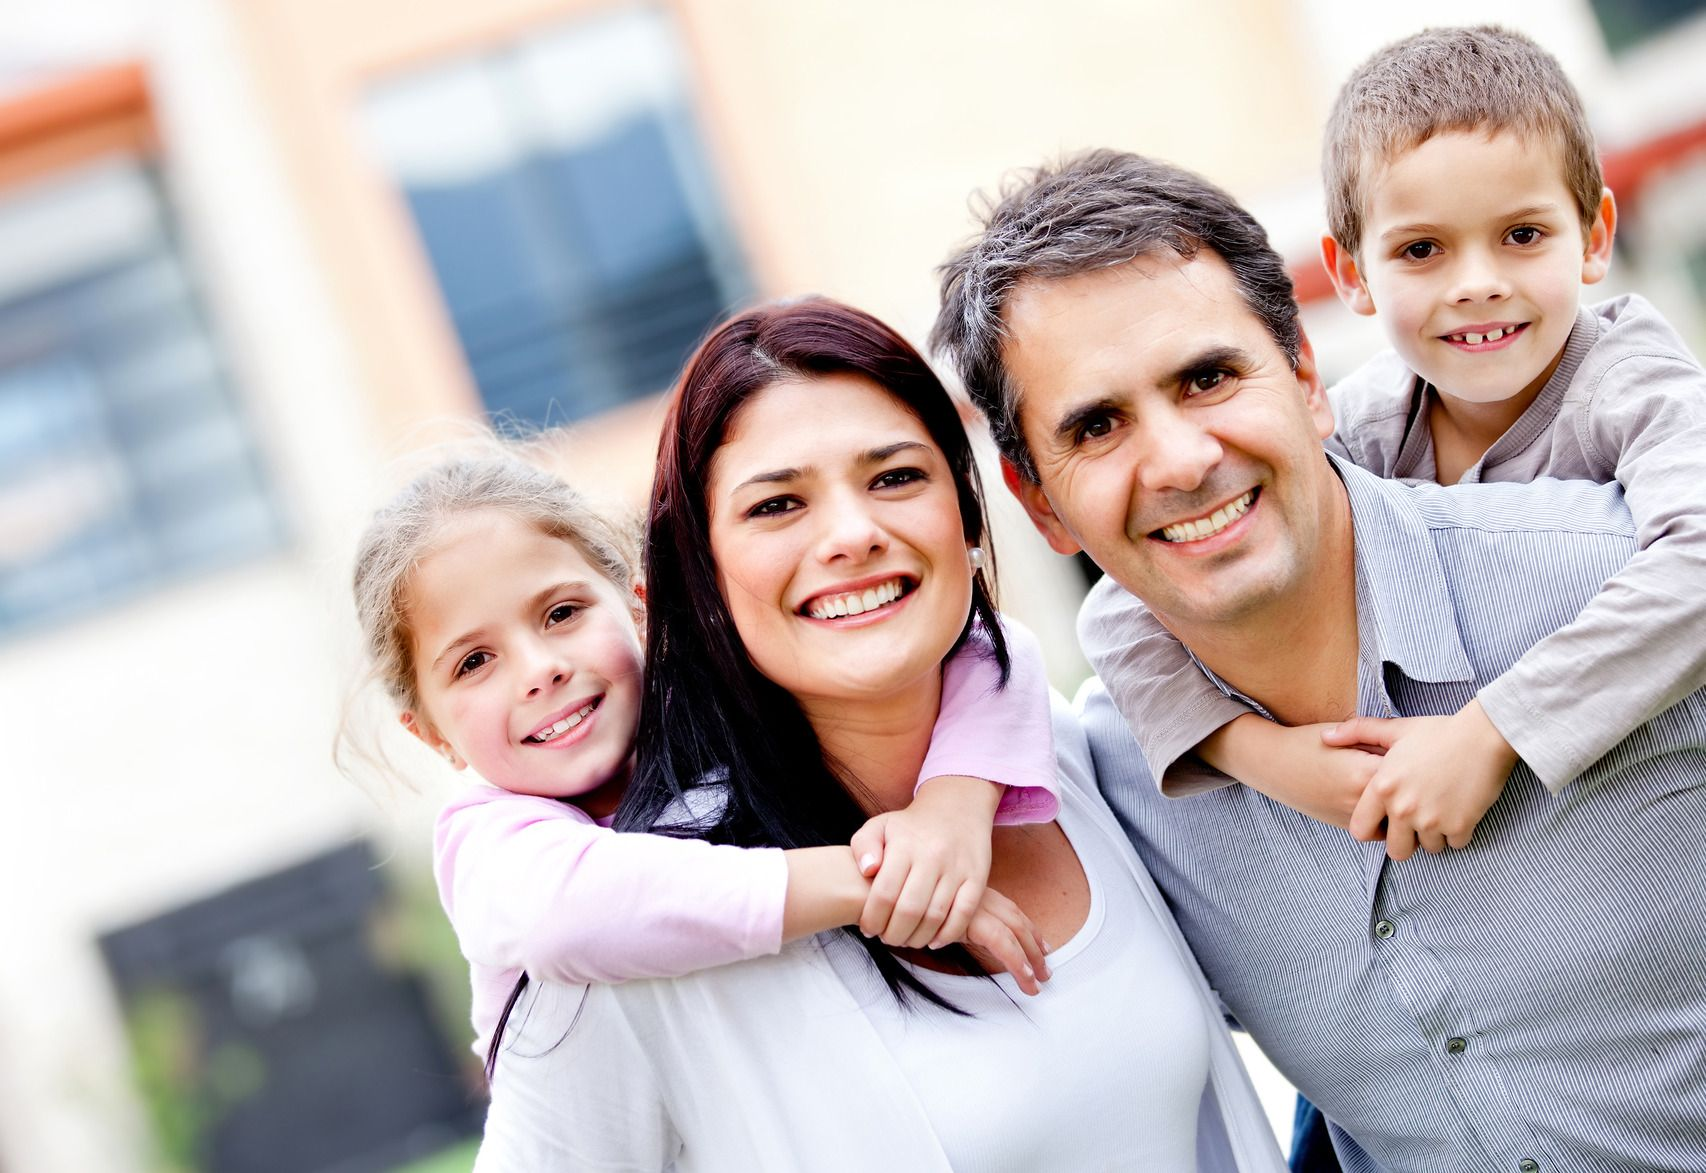 Eldershield is an Medisave approved scheme to provide a